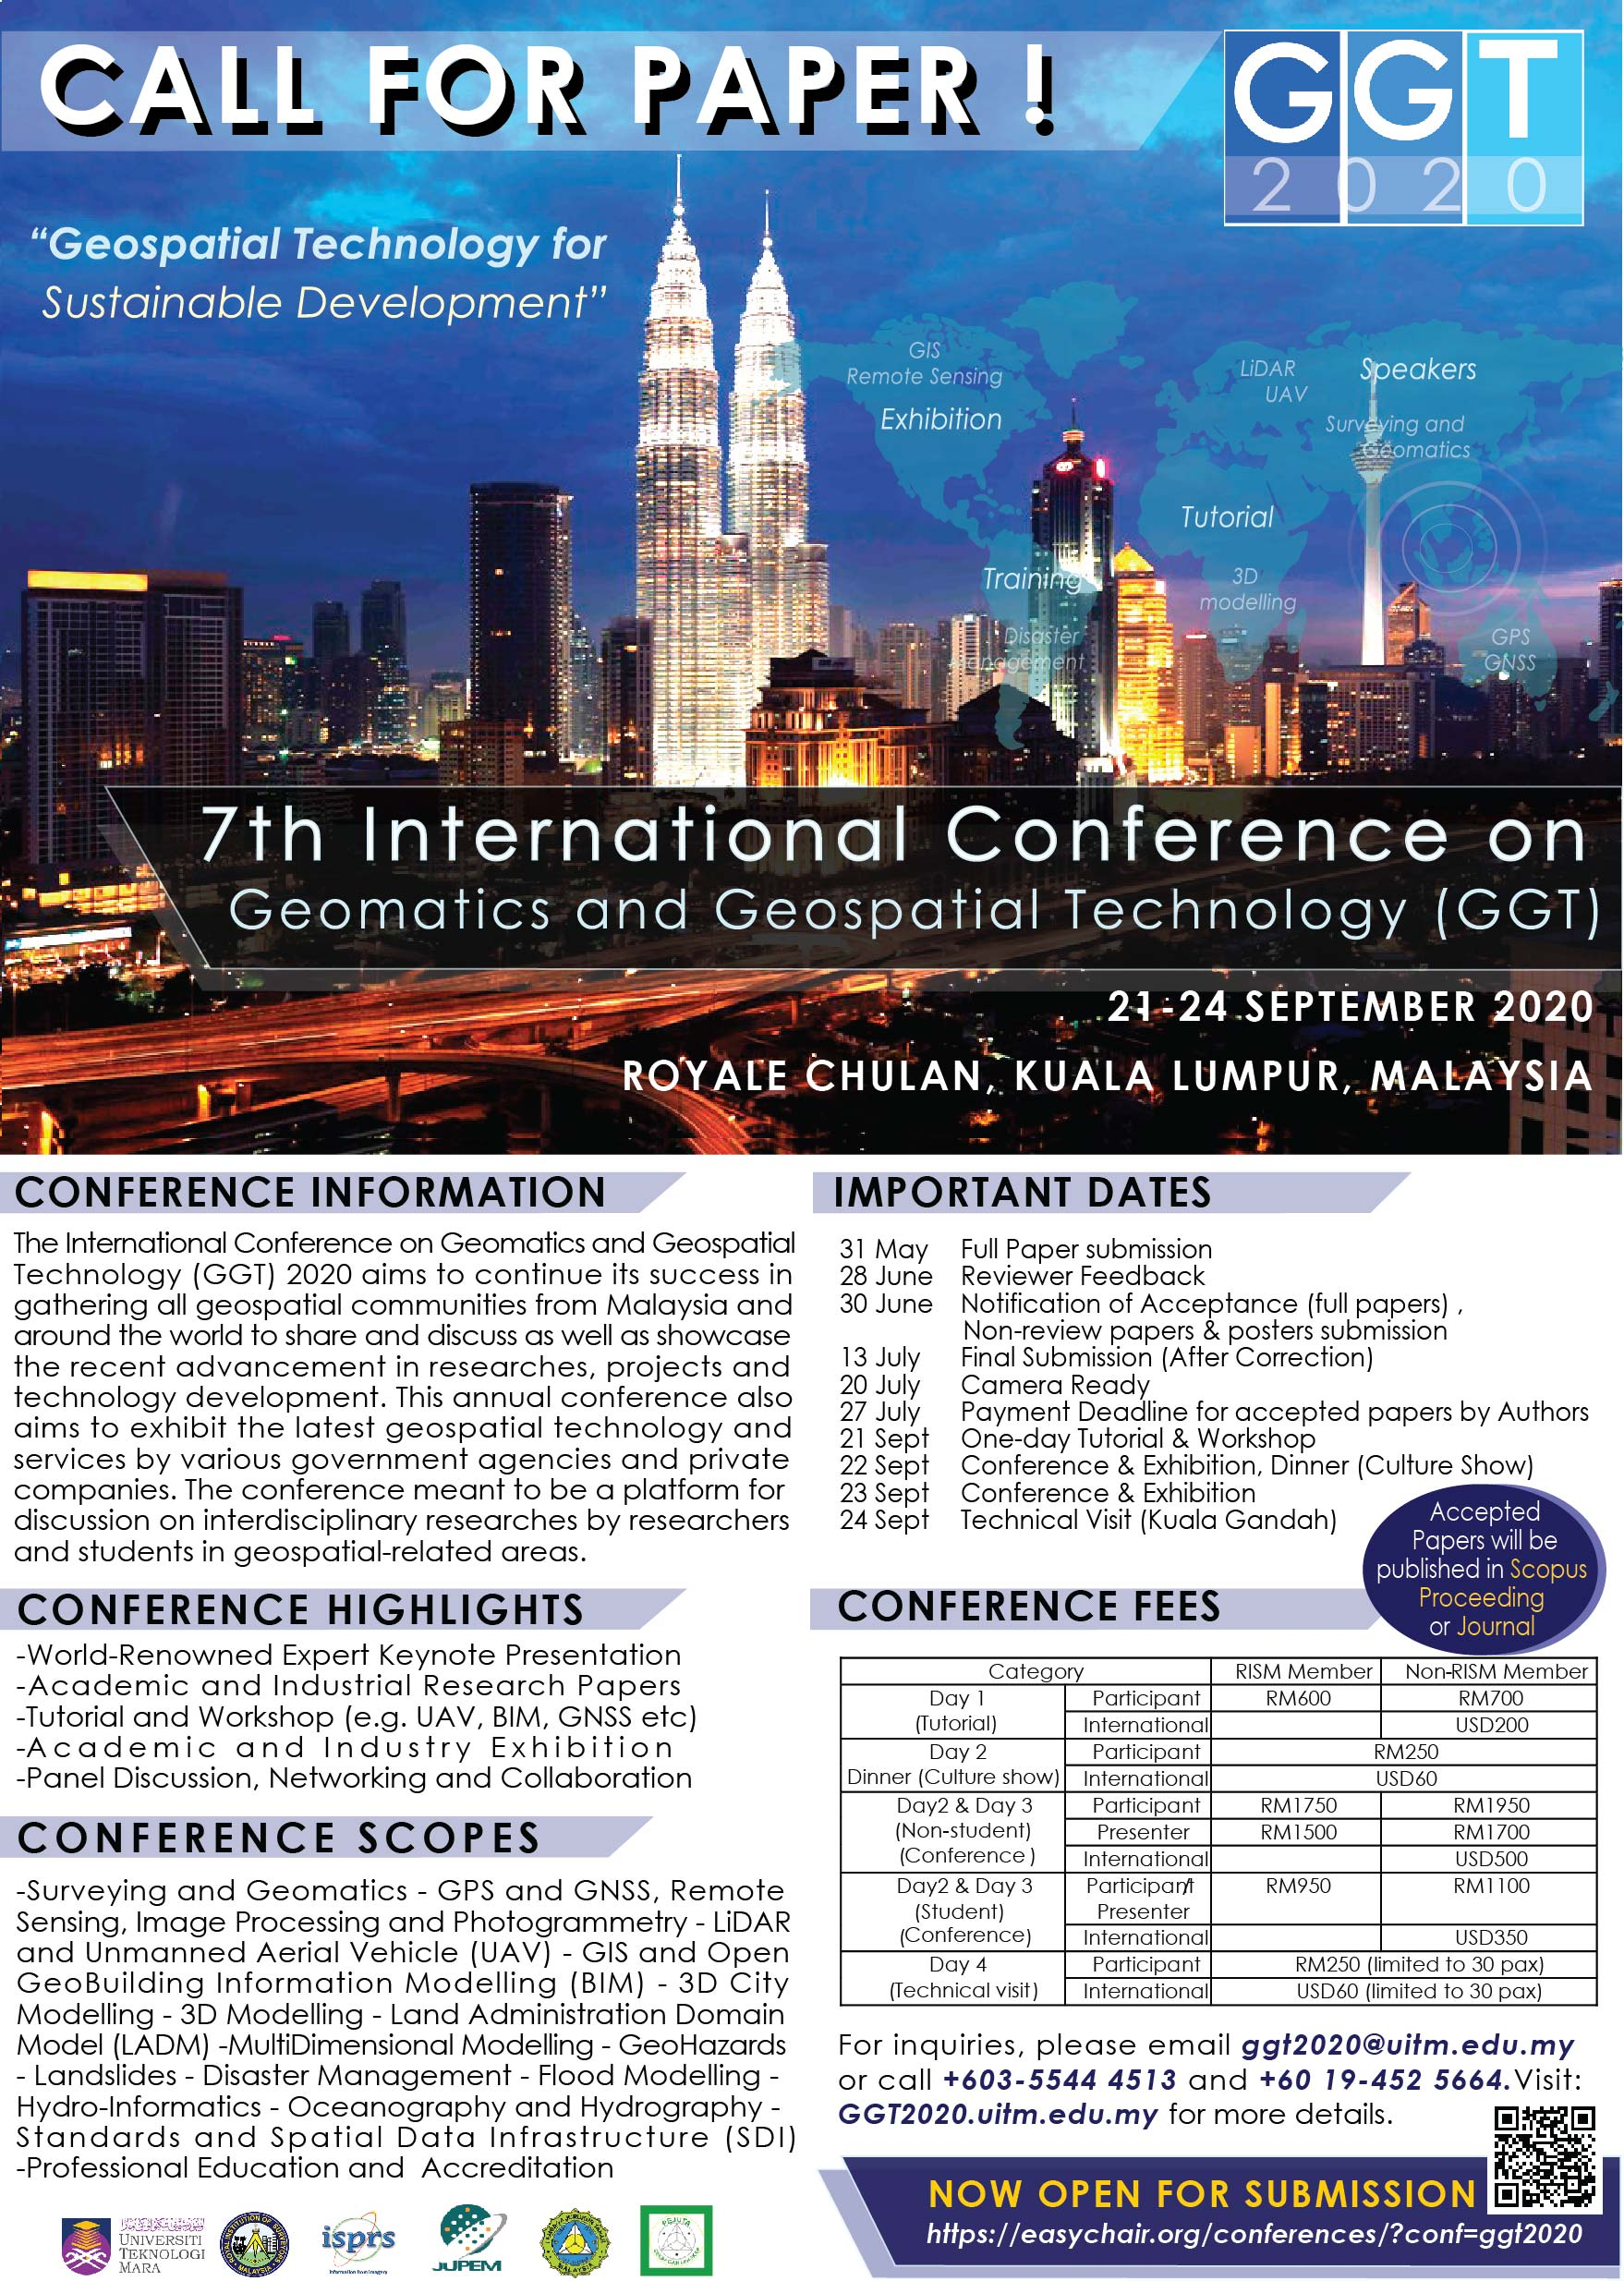 Call for Papers: 7th International Conferences on Geomatics and Geospatial Technology 2020 (Scopus Indexed Publication), 21-24 Sept 2020, KL